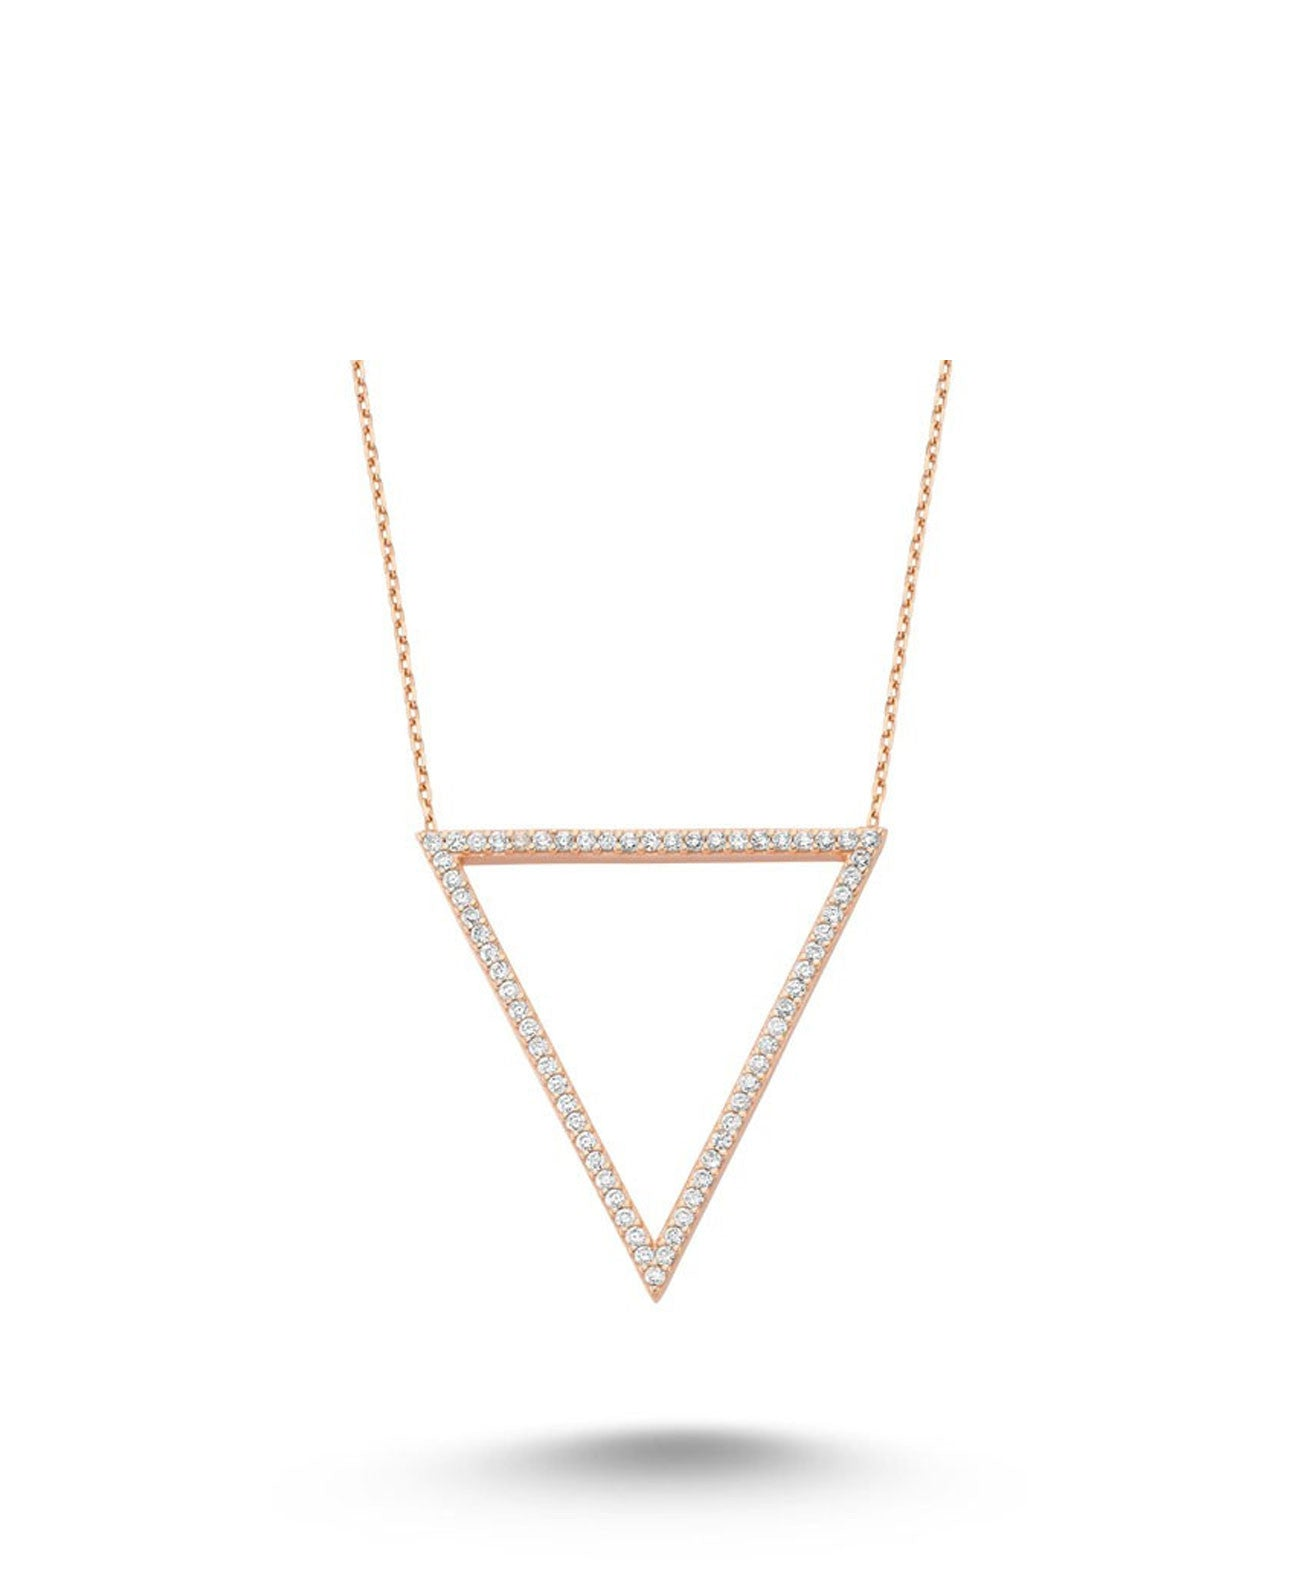 ROSE GOLD PLATED NECKLACE - Koko & Palenki